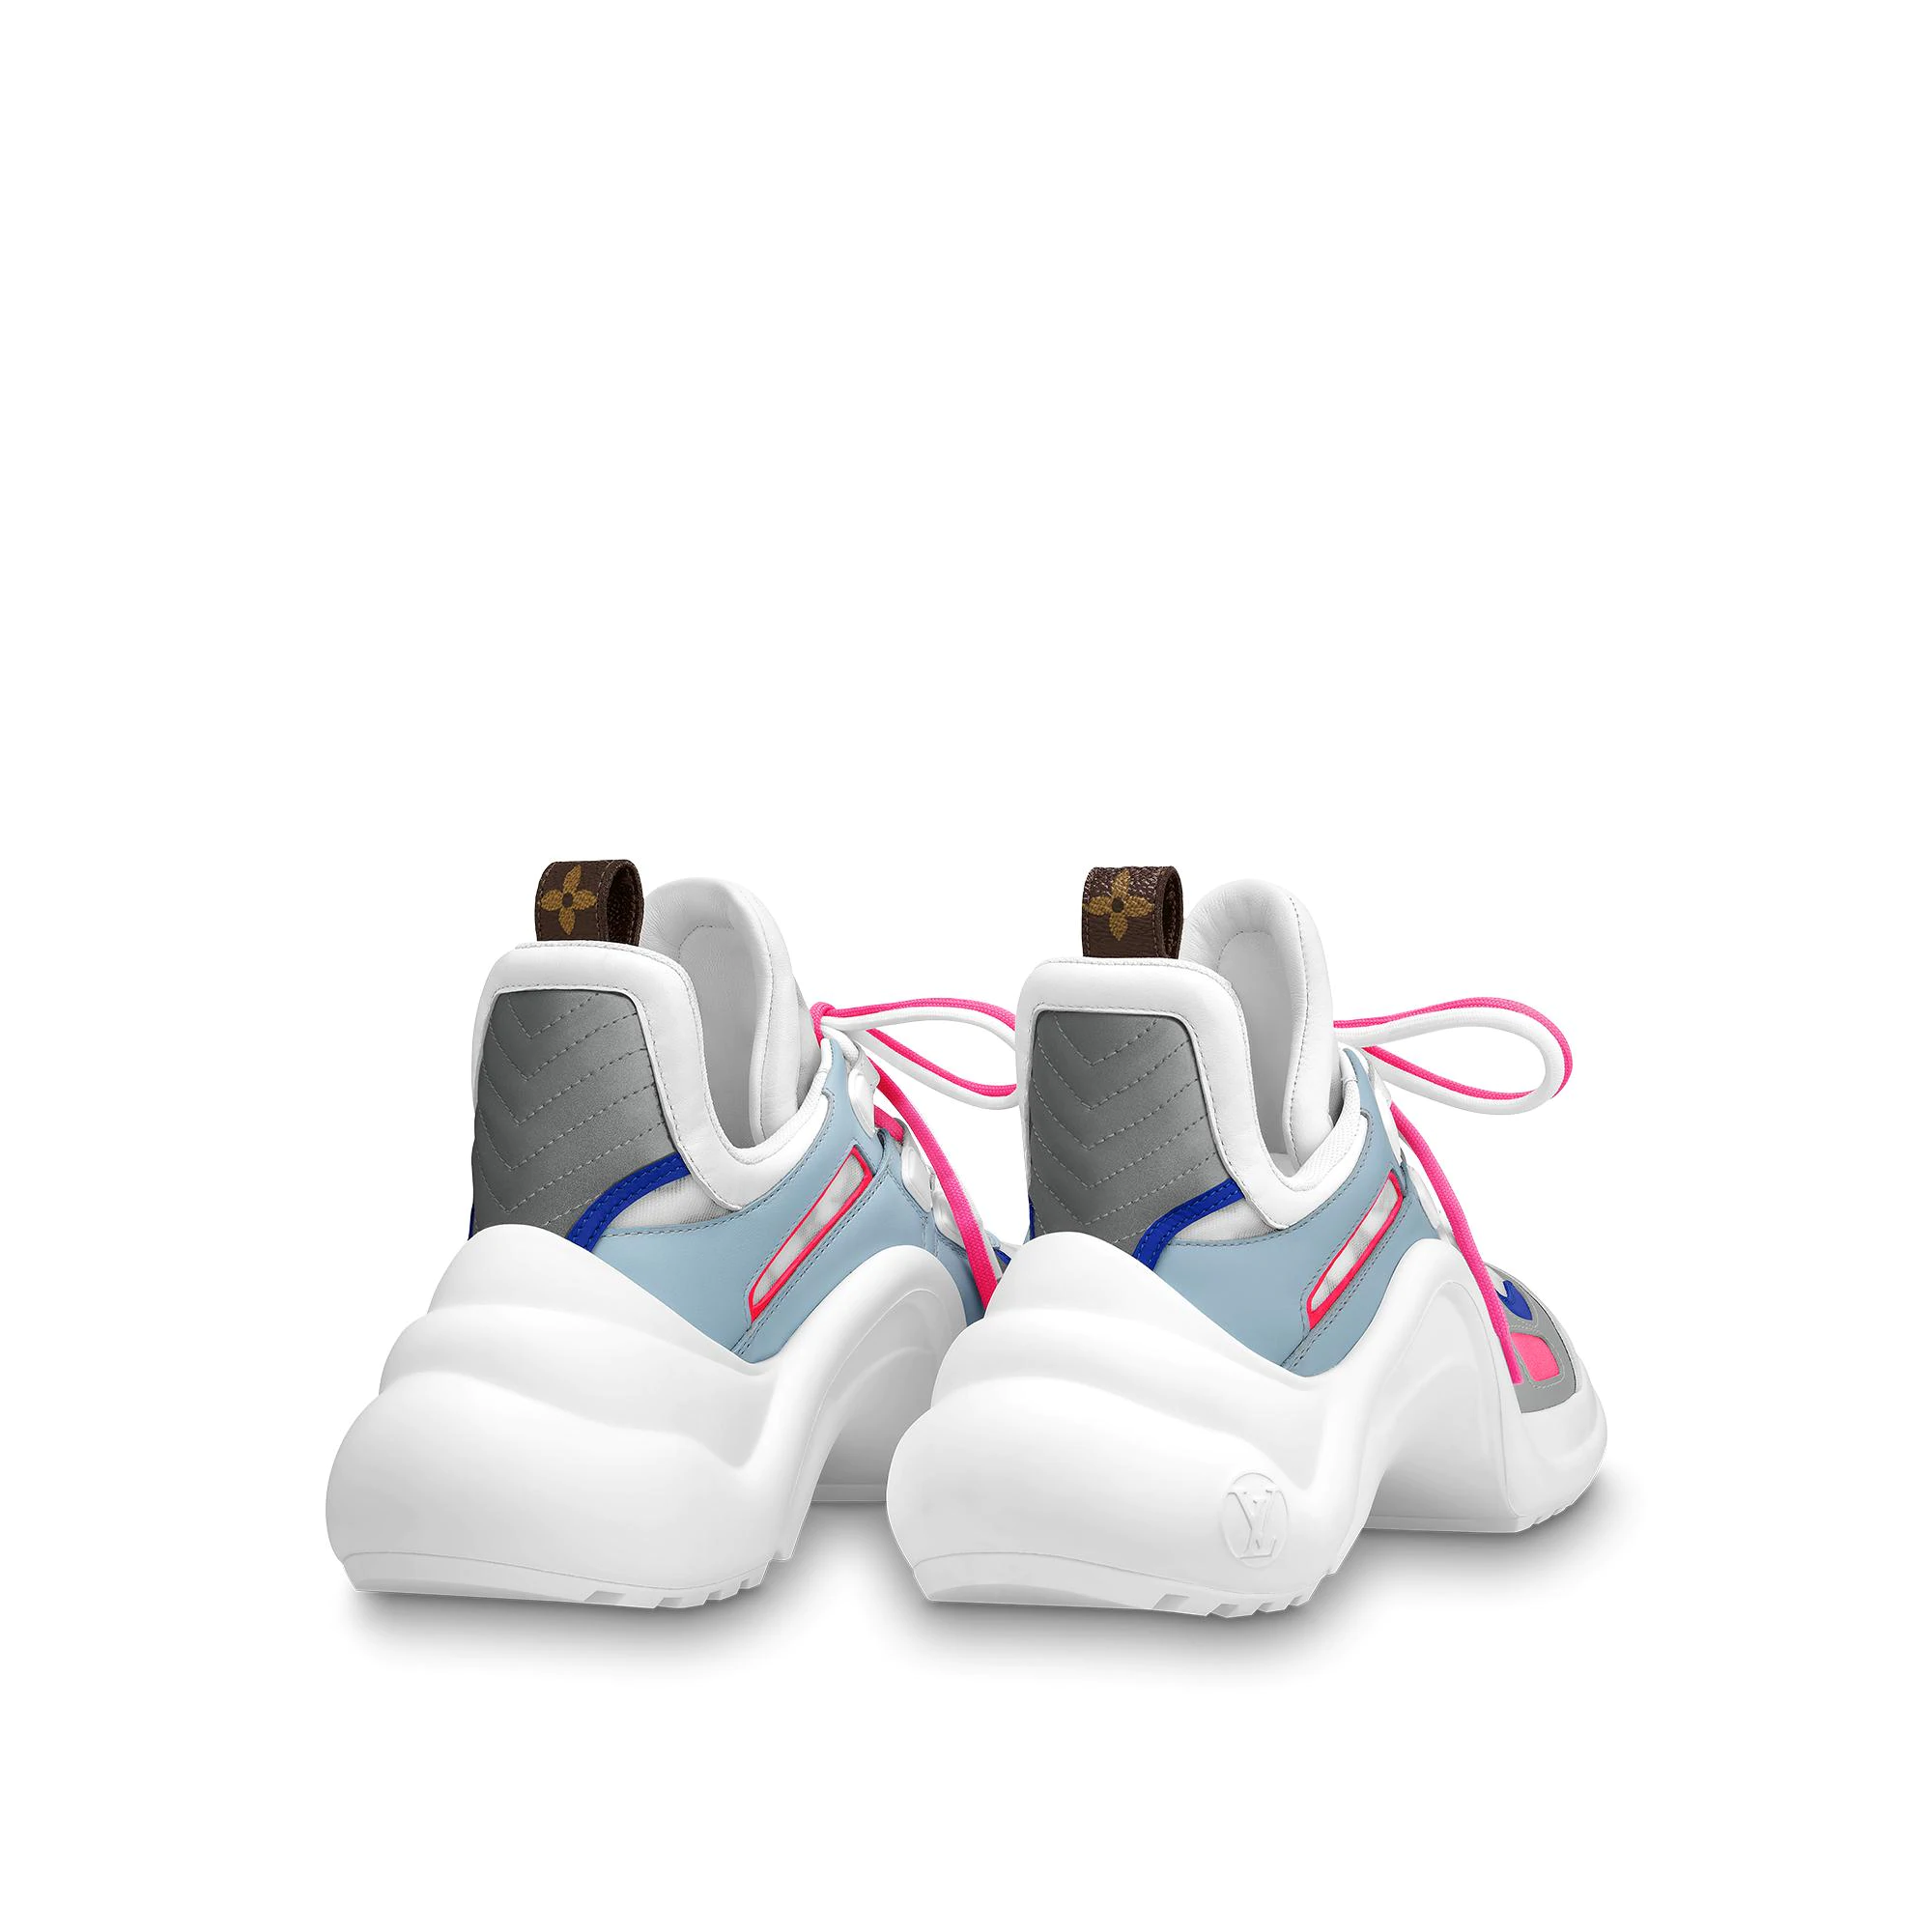 유럽직배송 루이비통 LOUIS VUITTON LV Archlight Sneaker 1A65KA